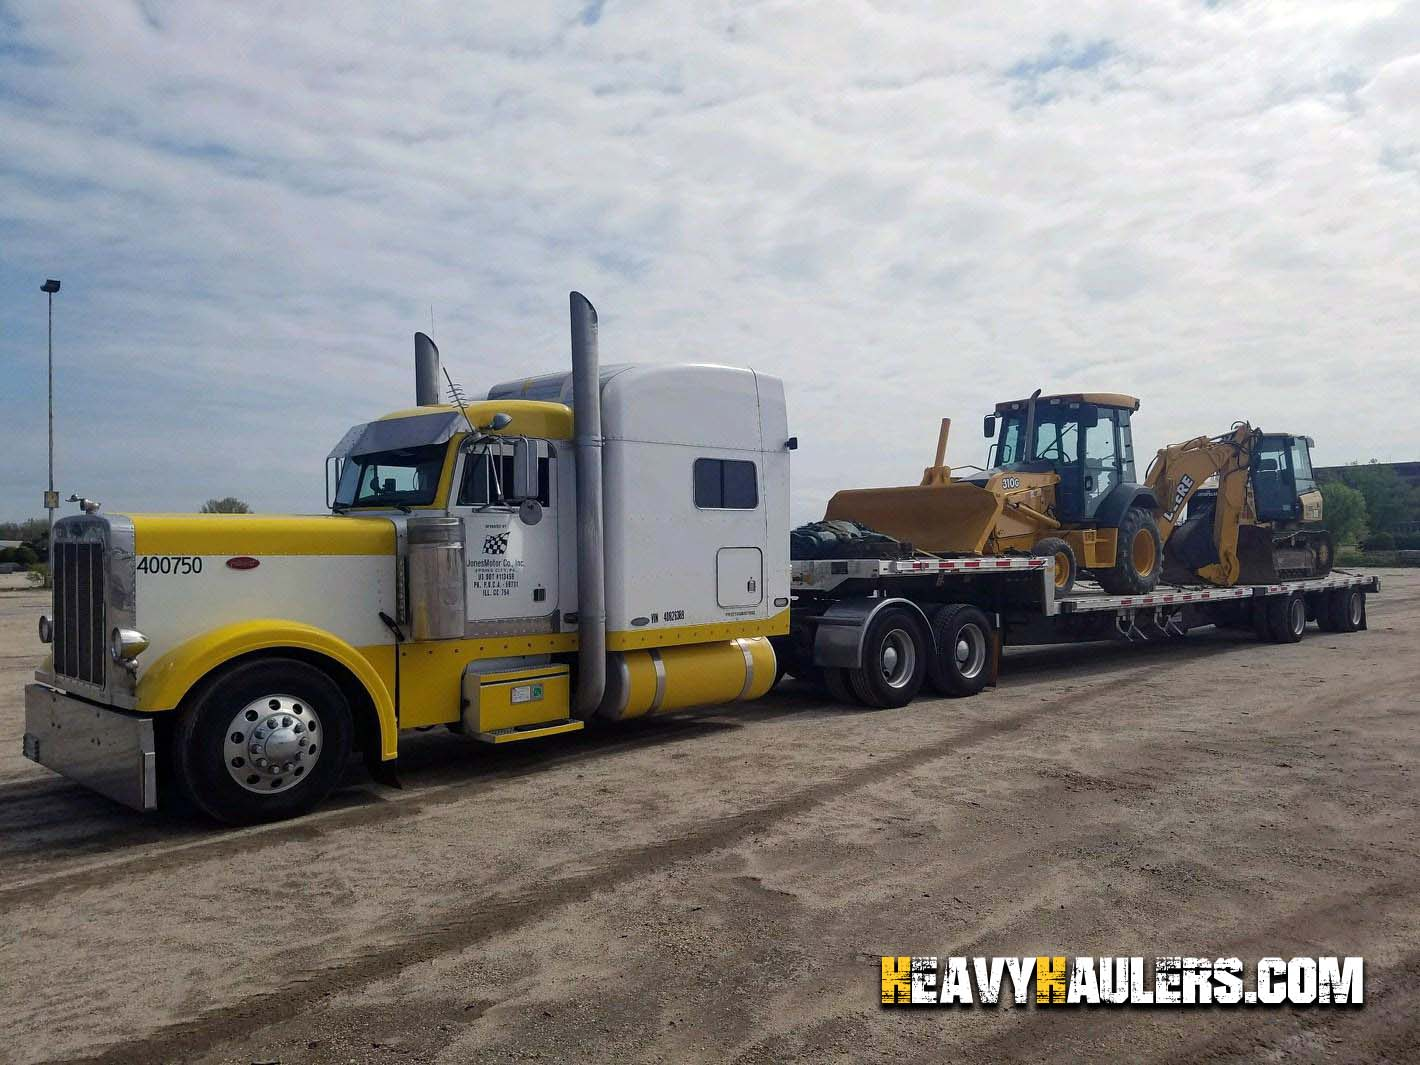 Backhoe Shipping Services   Heavy Haulers   (800) 908-6206